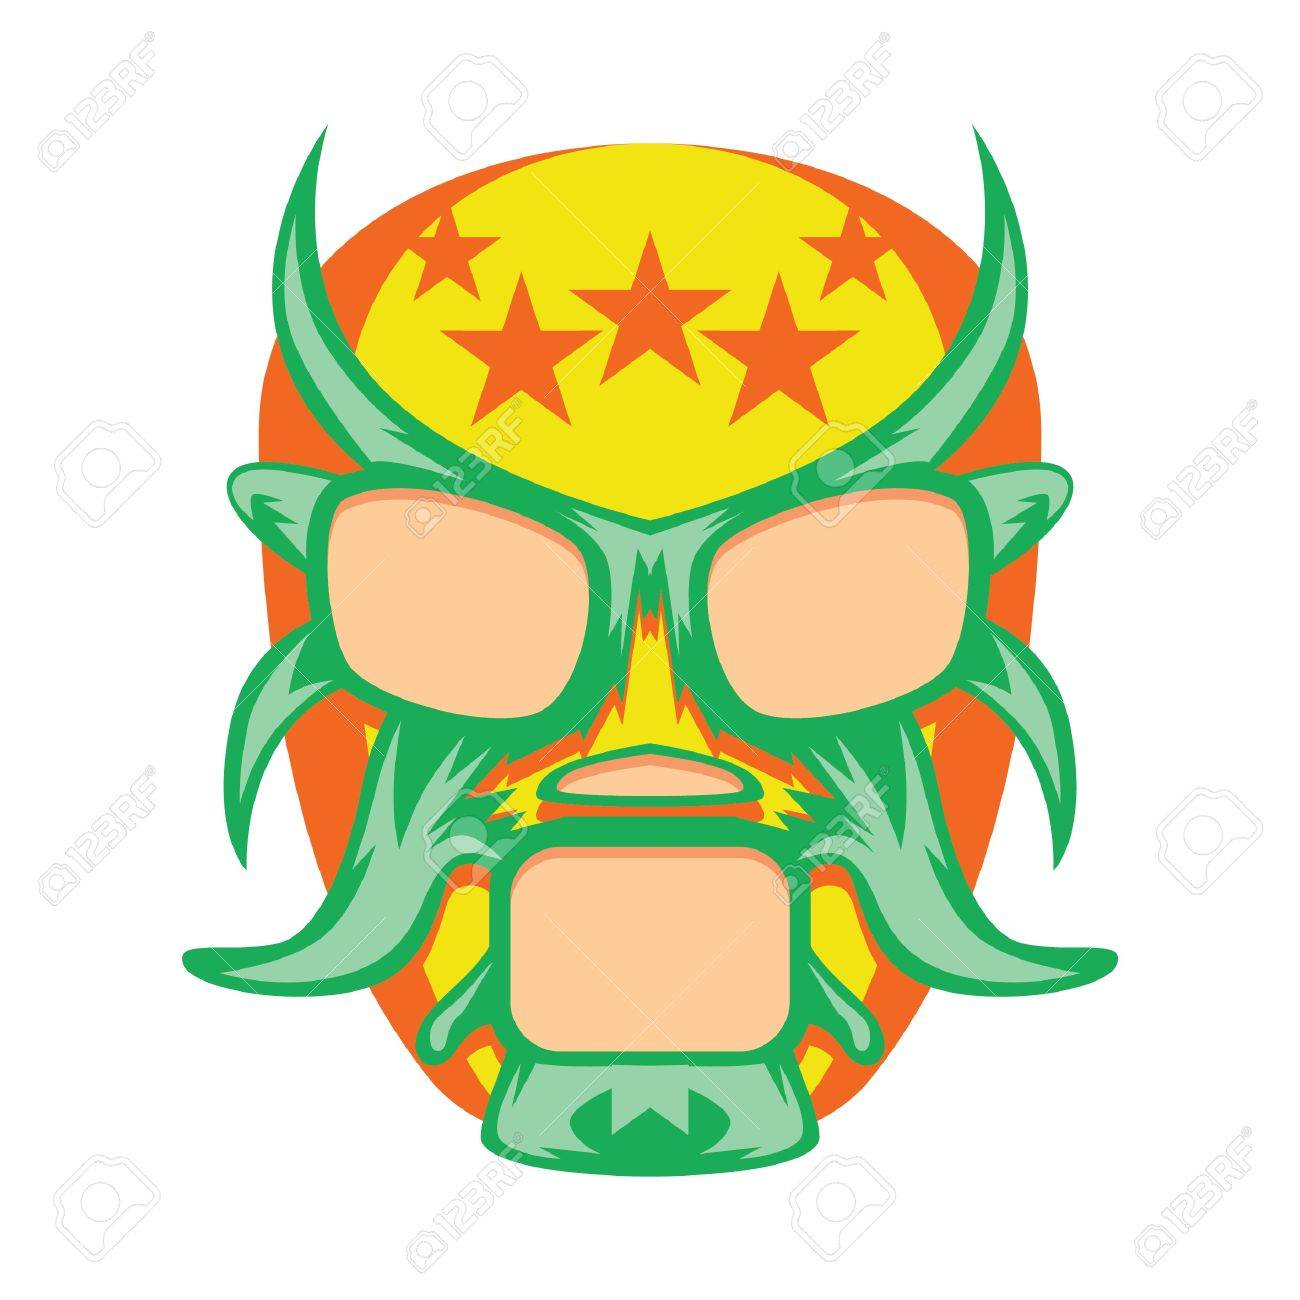 Luchador mask clipart 5 » Clipart Station.